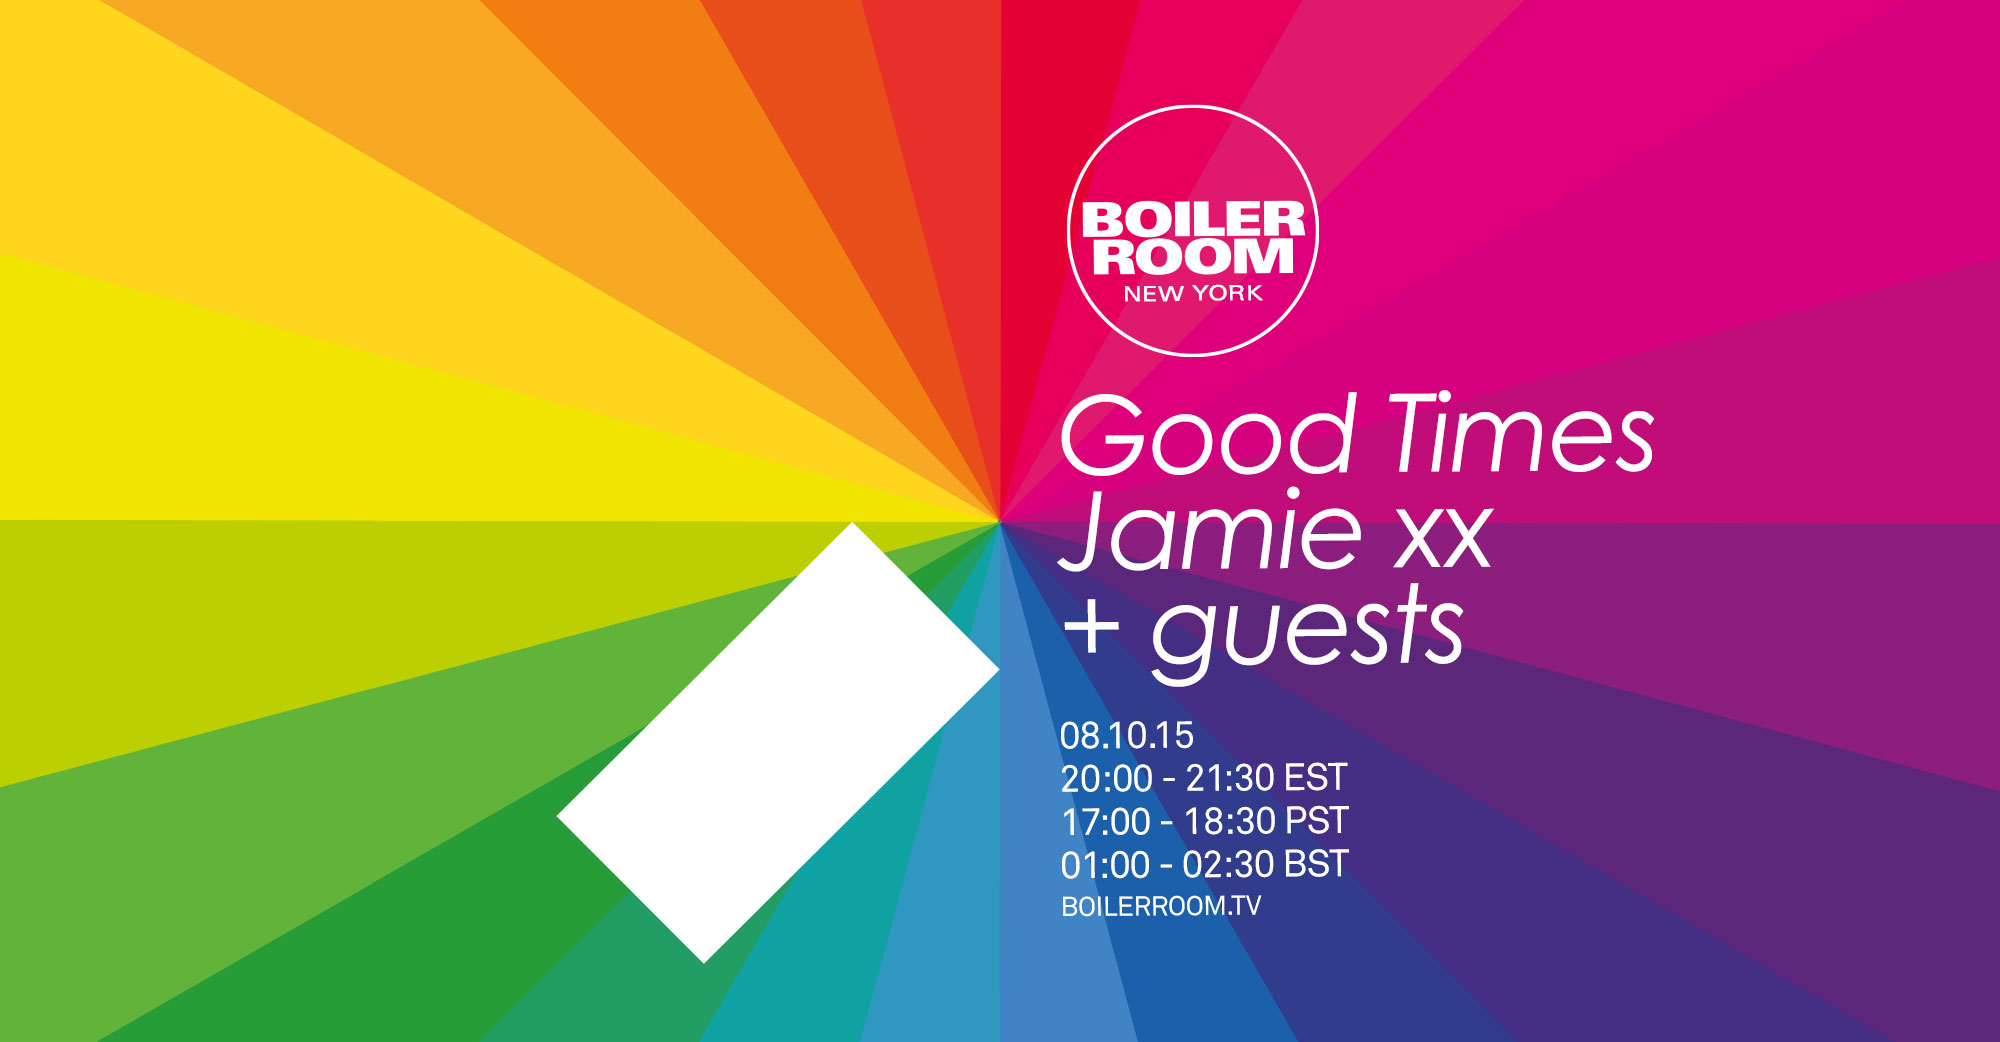 Good Times with Jamie xx Flyer Image